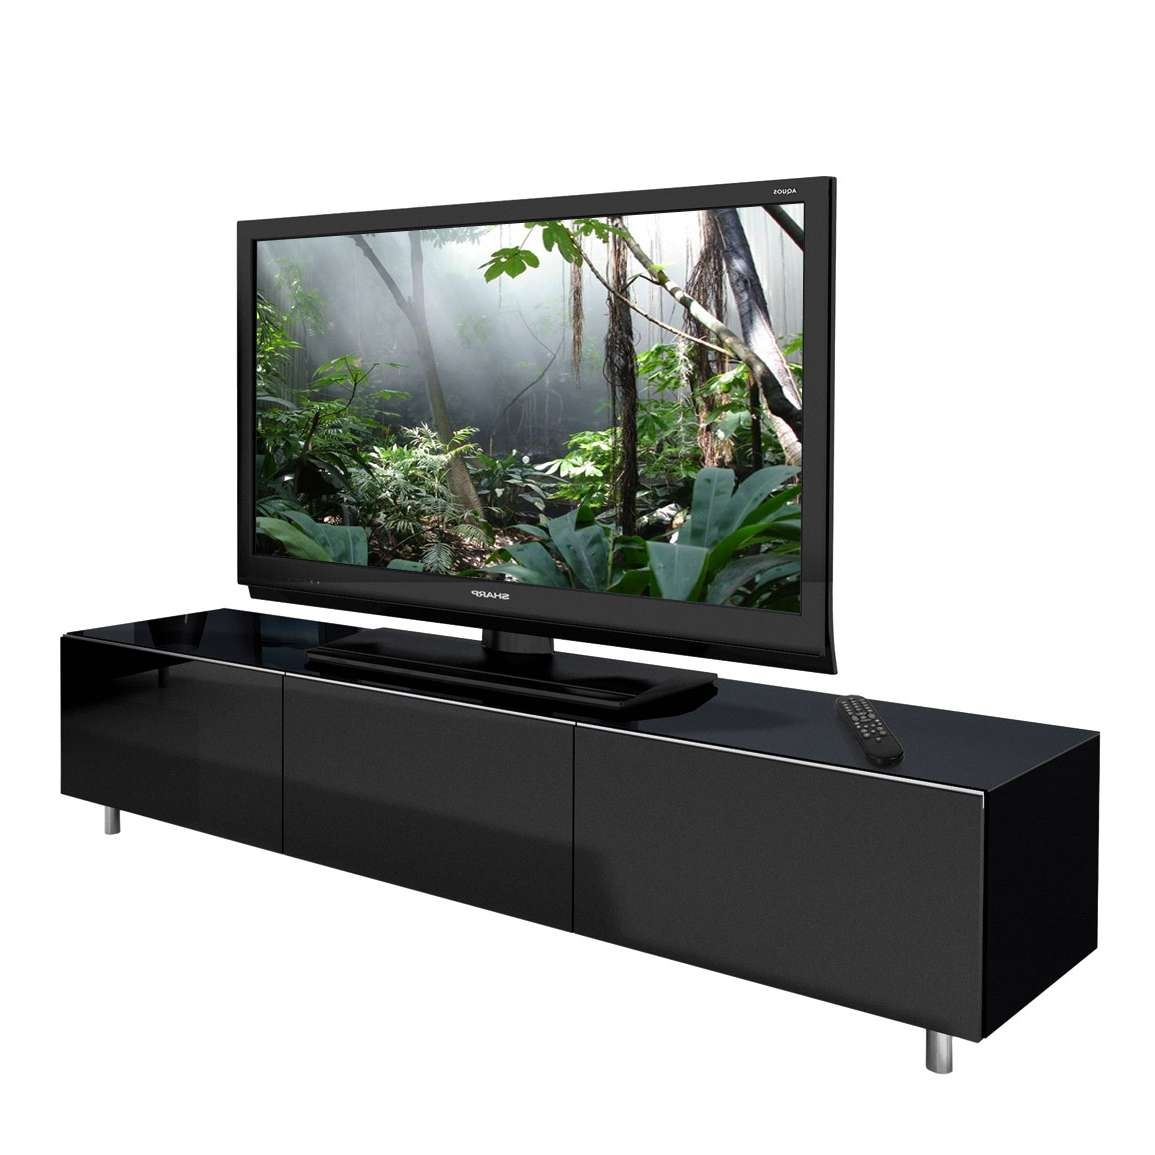 Spectral Just Racks Jrl1650S Gloss Black Tv Cabinet – Just Racks With Regard To Gloss Tv Stands (View 13 of 15)